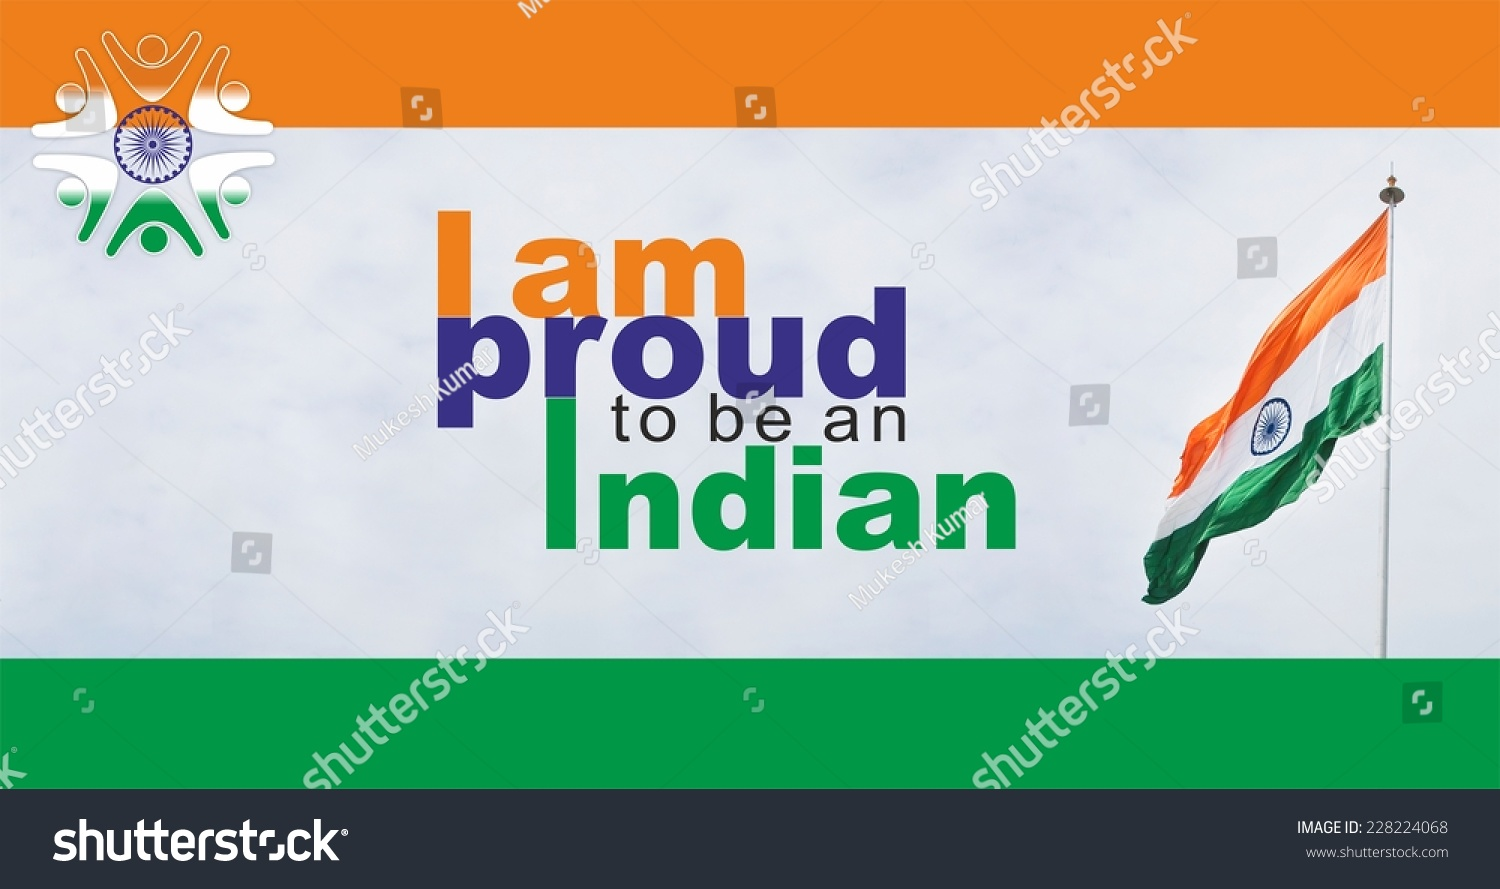 i am proud to be an indian essays I have a blog where i can say whatever i want about who i am and what i believe  regardless of what makes you proud to be an american, take some time today to .